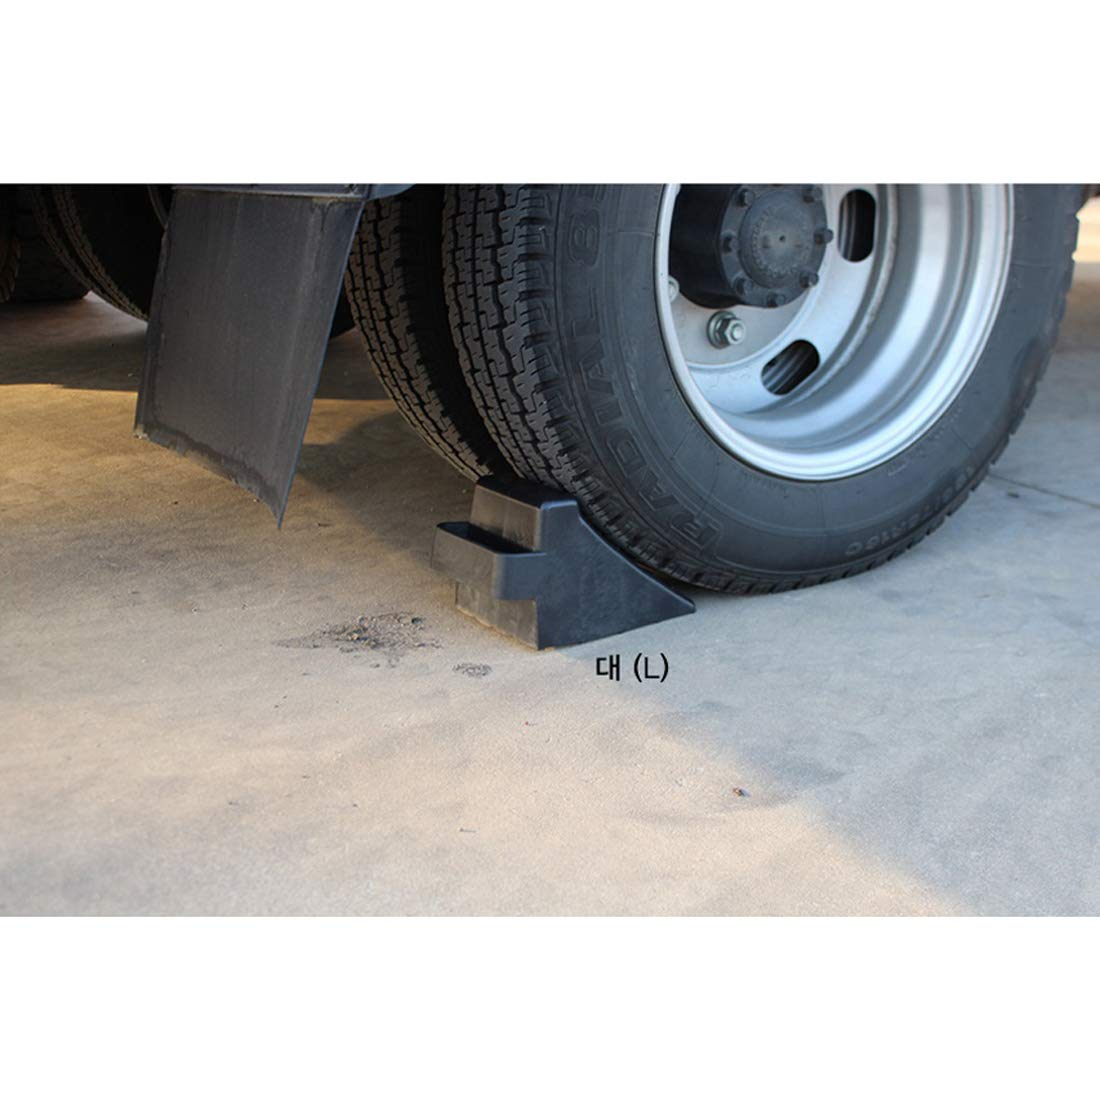 GB 2PCS of Tire Crutch Wheel Chocks for Car Truck Stopper Block Set (Large) by [GBOEM] (Image #2)